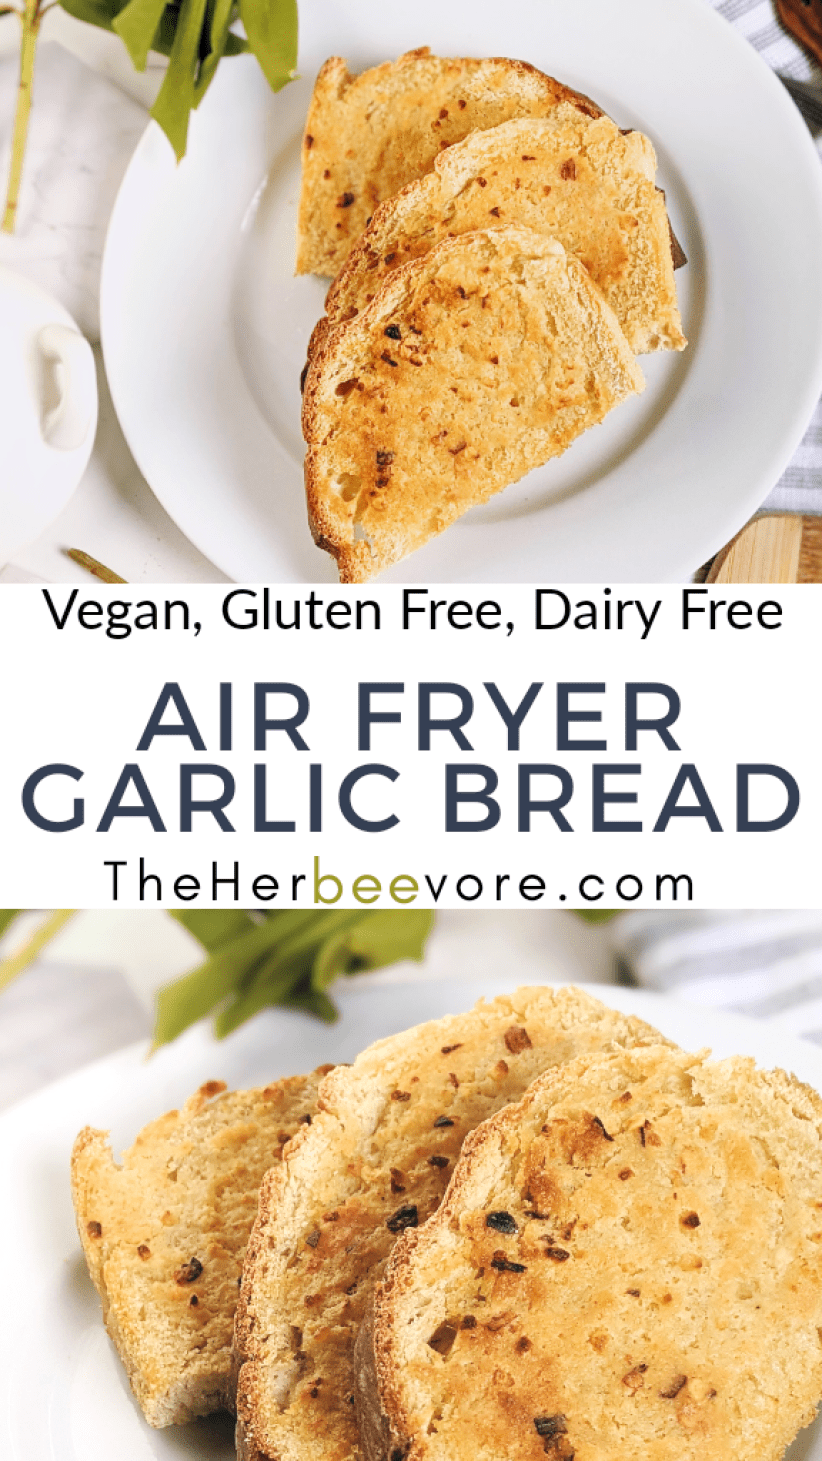 vegan garlic bread in the air fryer vegan air fryer recipes healthy gluten free garlic bread with sliced bread recipes healthy homemade no oil